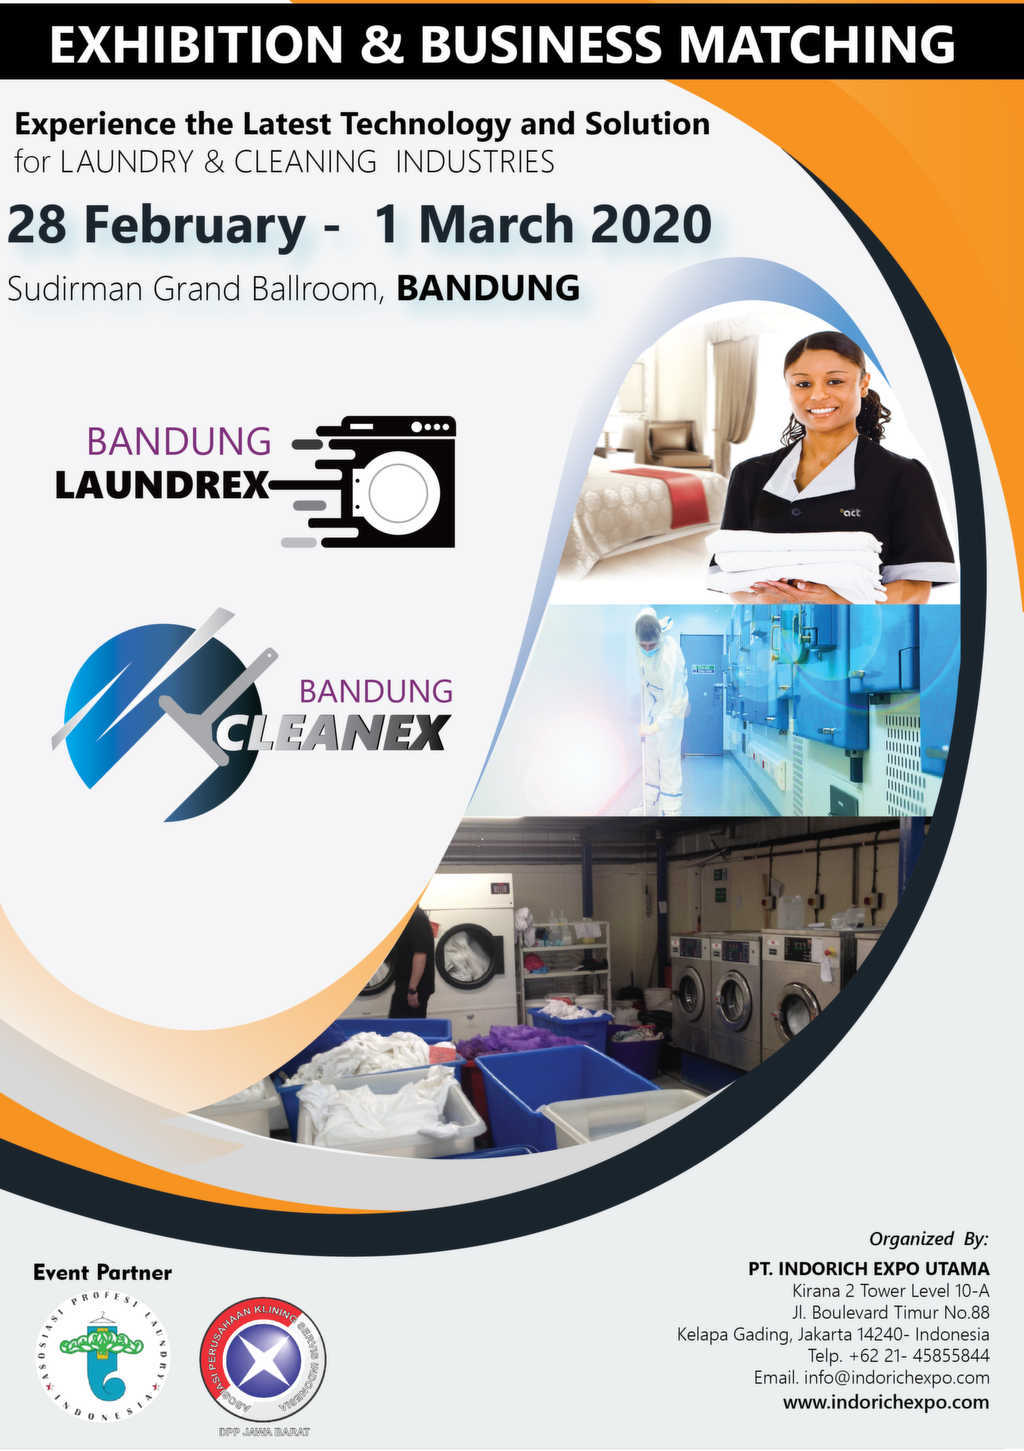 BANDUNG LAUNDREX & CLEANEX EXPO 2020